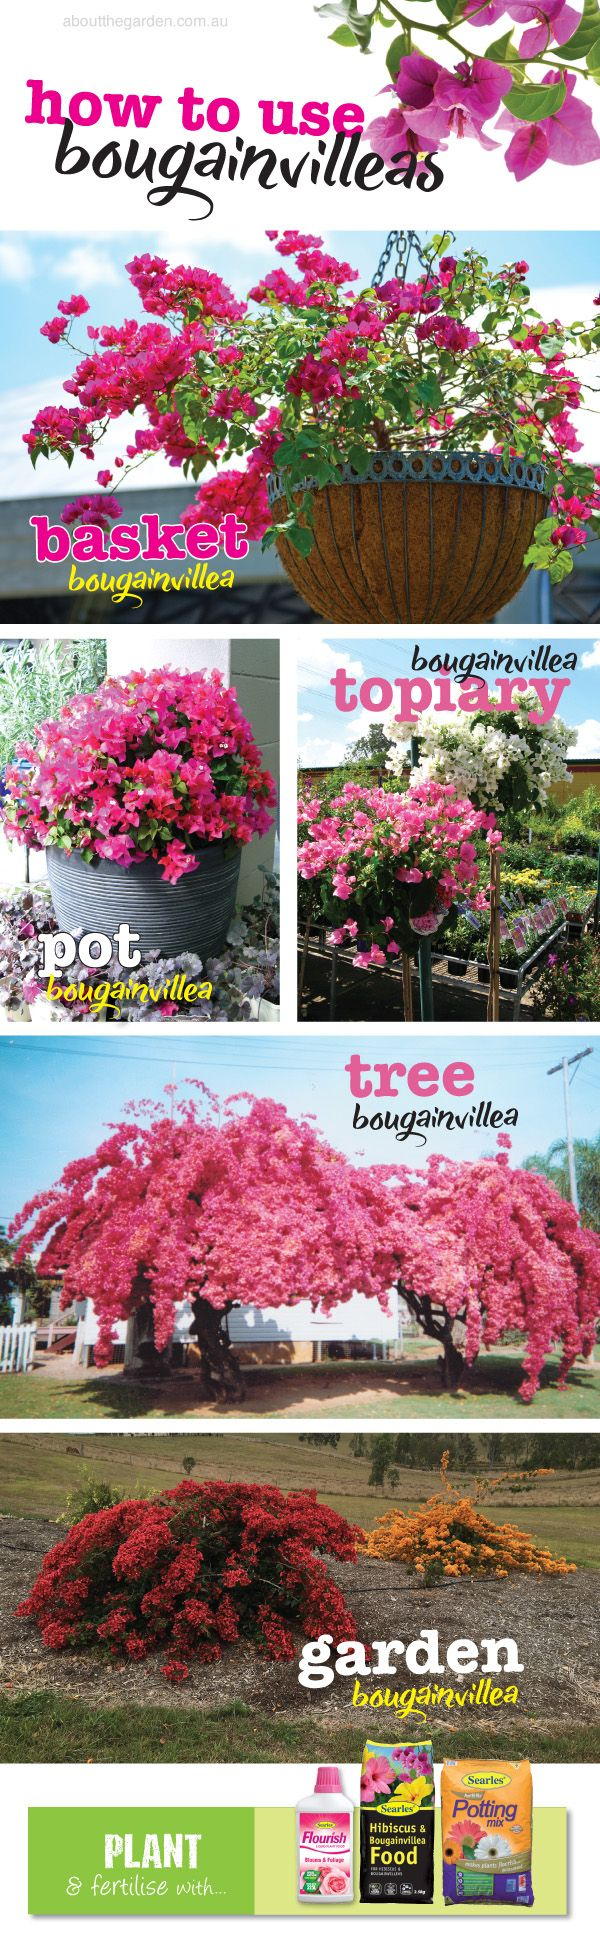 Best-uses-and-how-to-grow-bougainvilleas-in-Australia.jpg (600×1935)